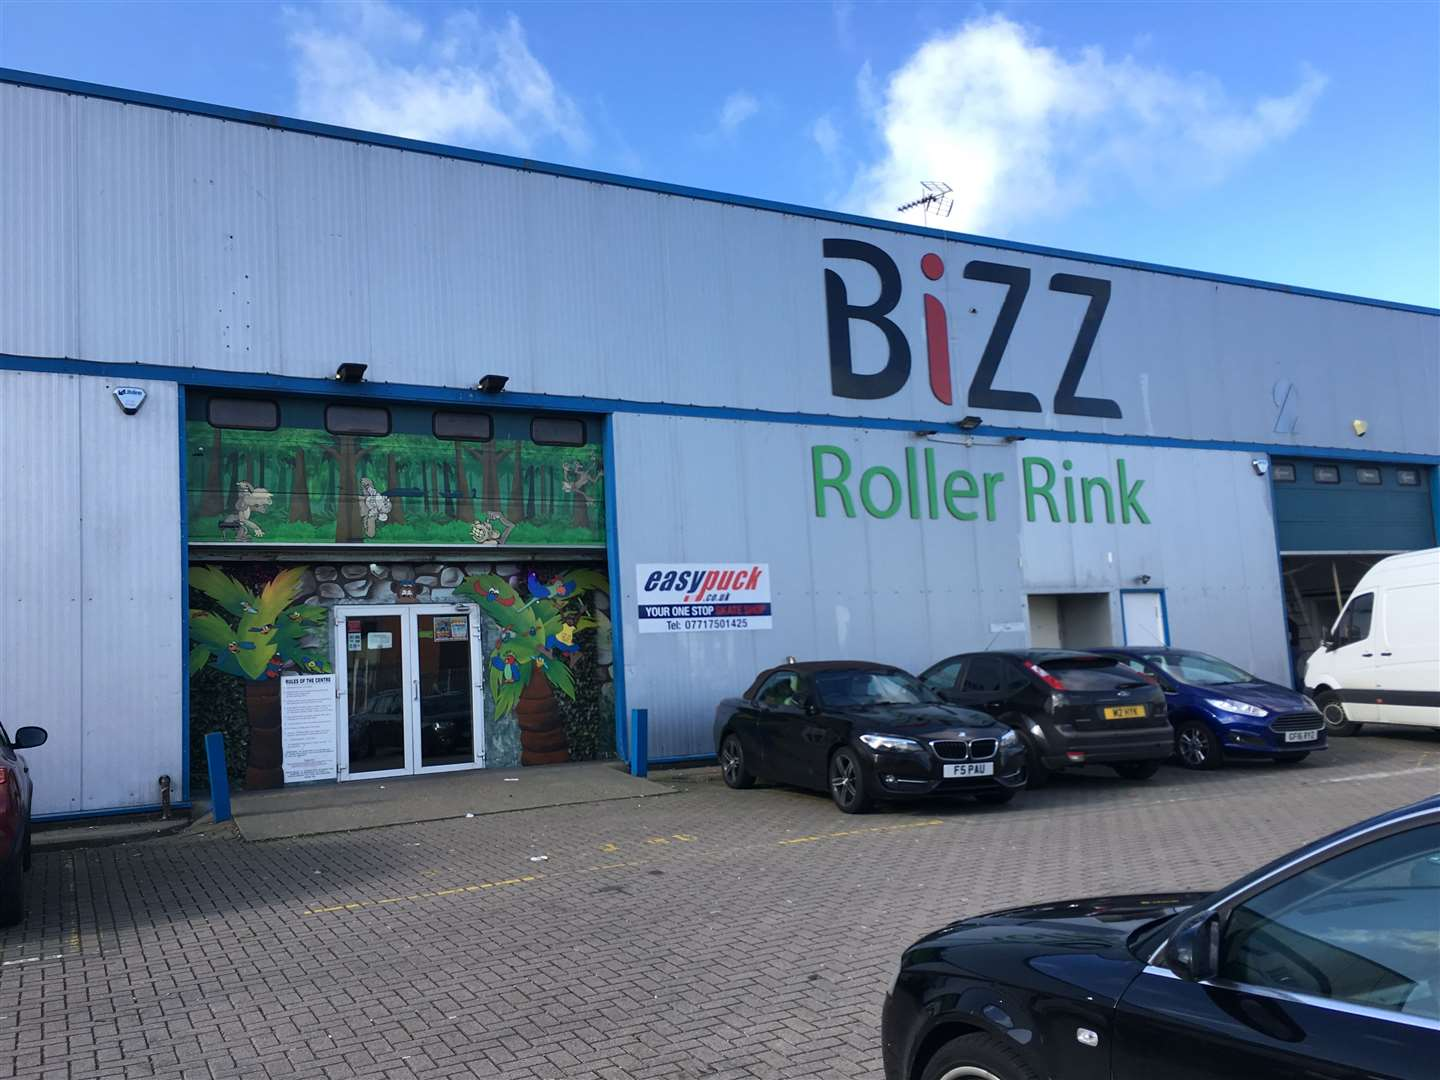 Monkey Bizz has reopened on the Medway City Estate. The Roller Bizz roller disco and gym closed prior to coronavirus in September last year.